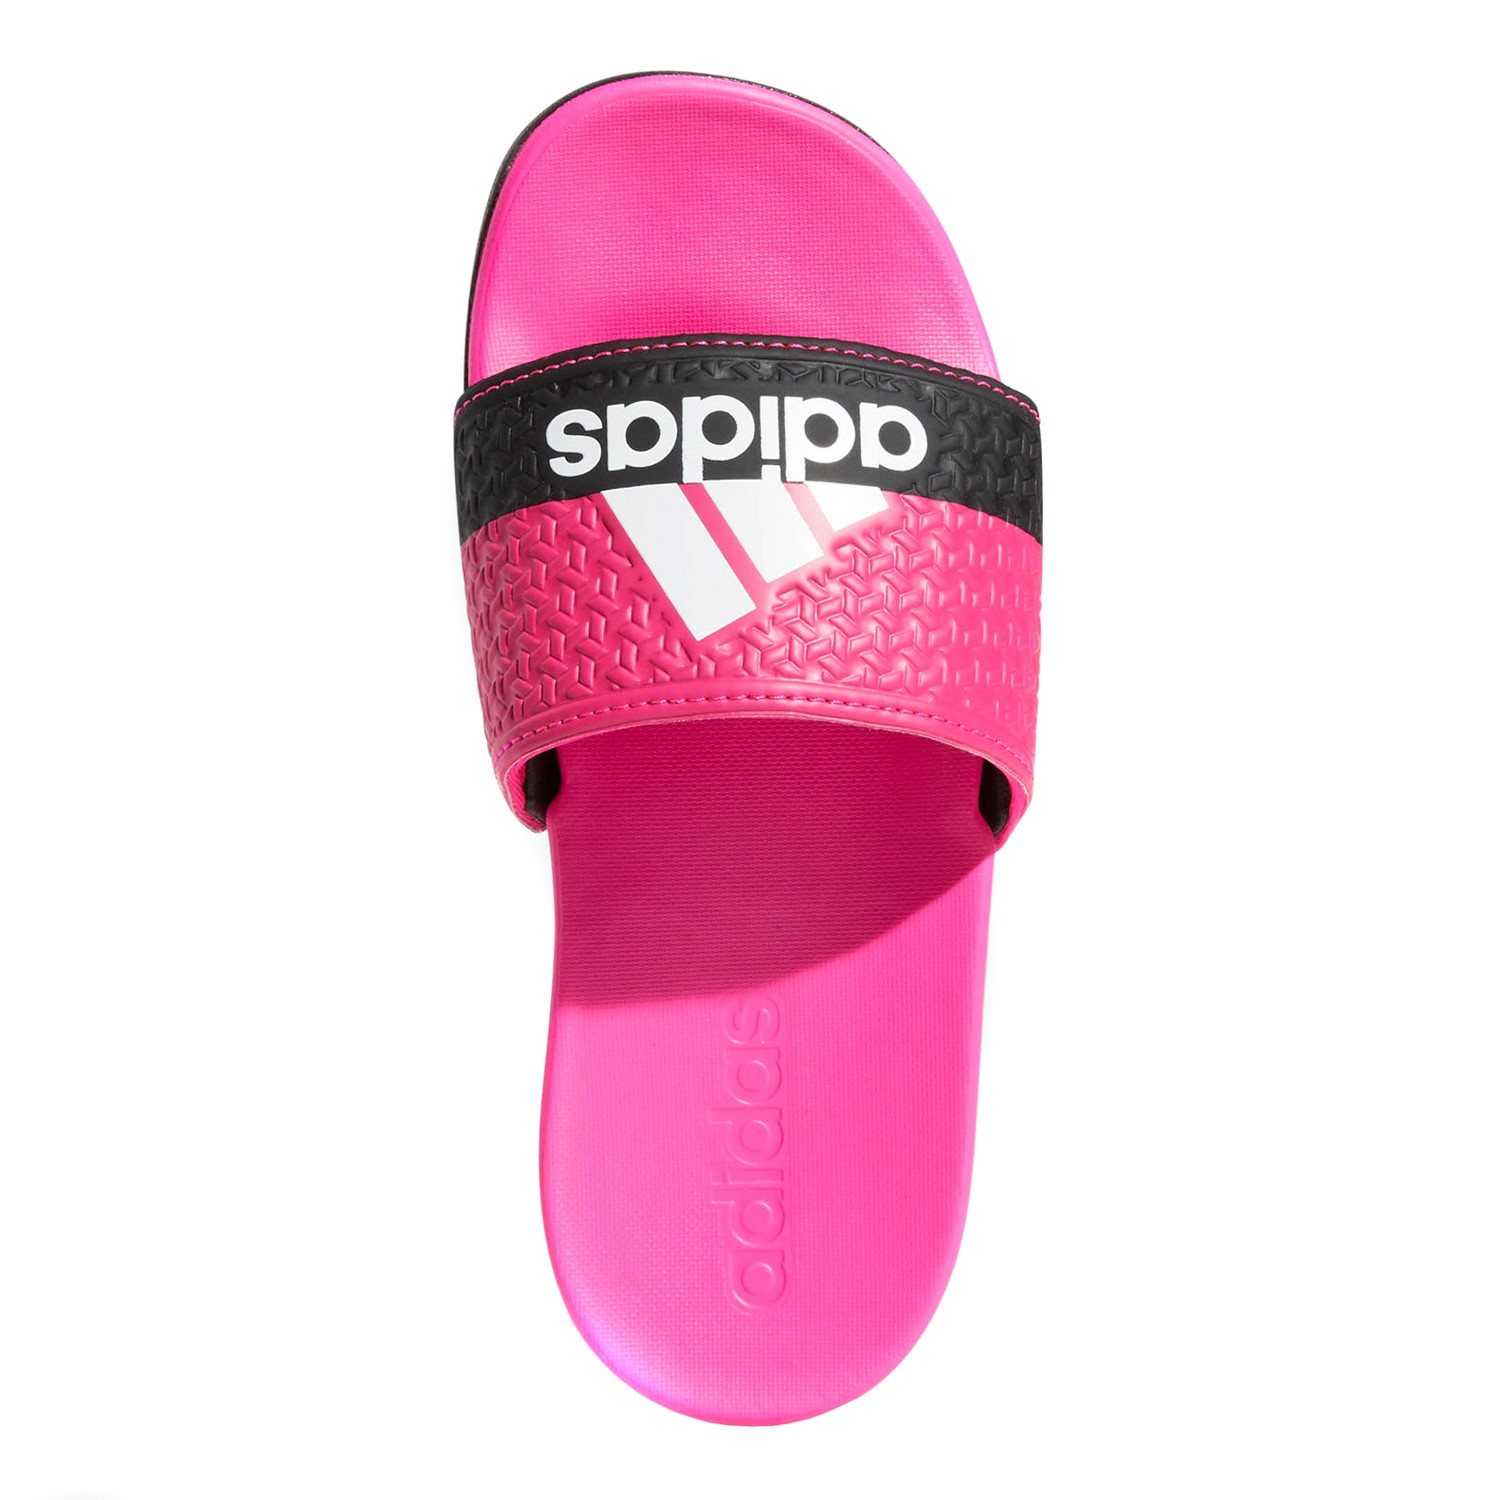 c17a41416c3f Adidas Adilette Comfort Slide - Kids Girls Casual Slide - Pink White Black